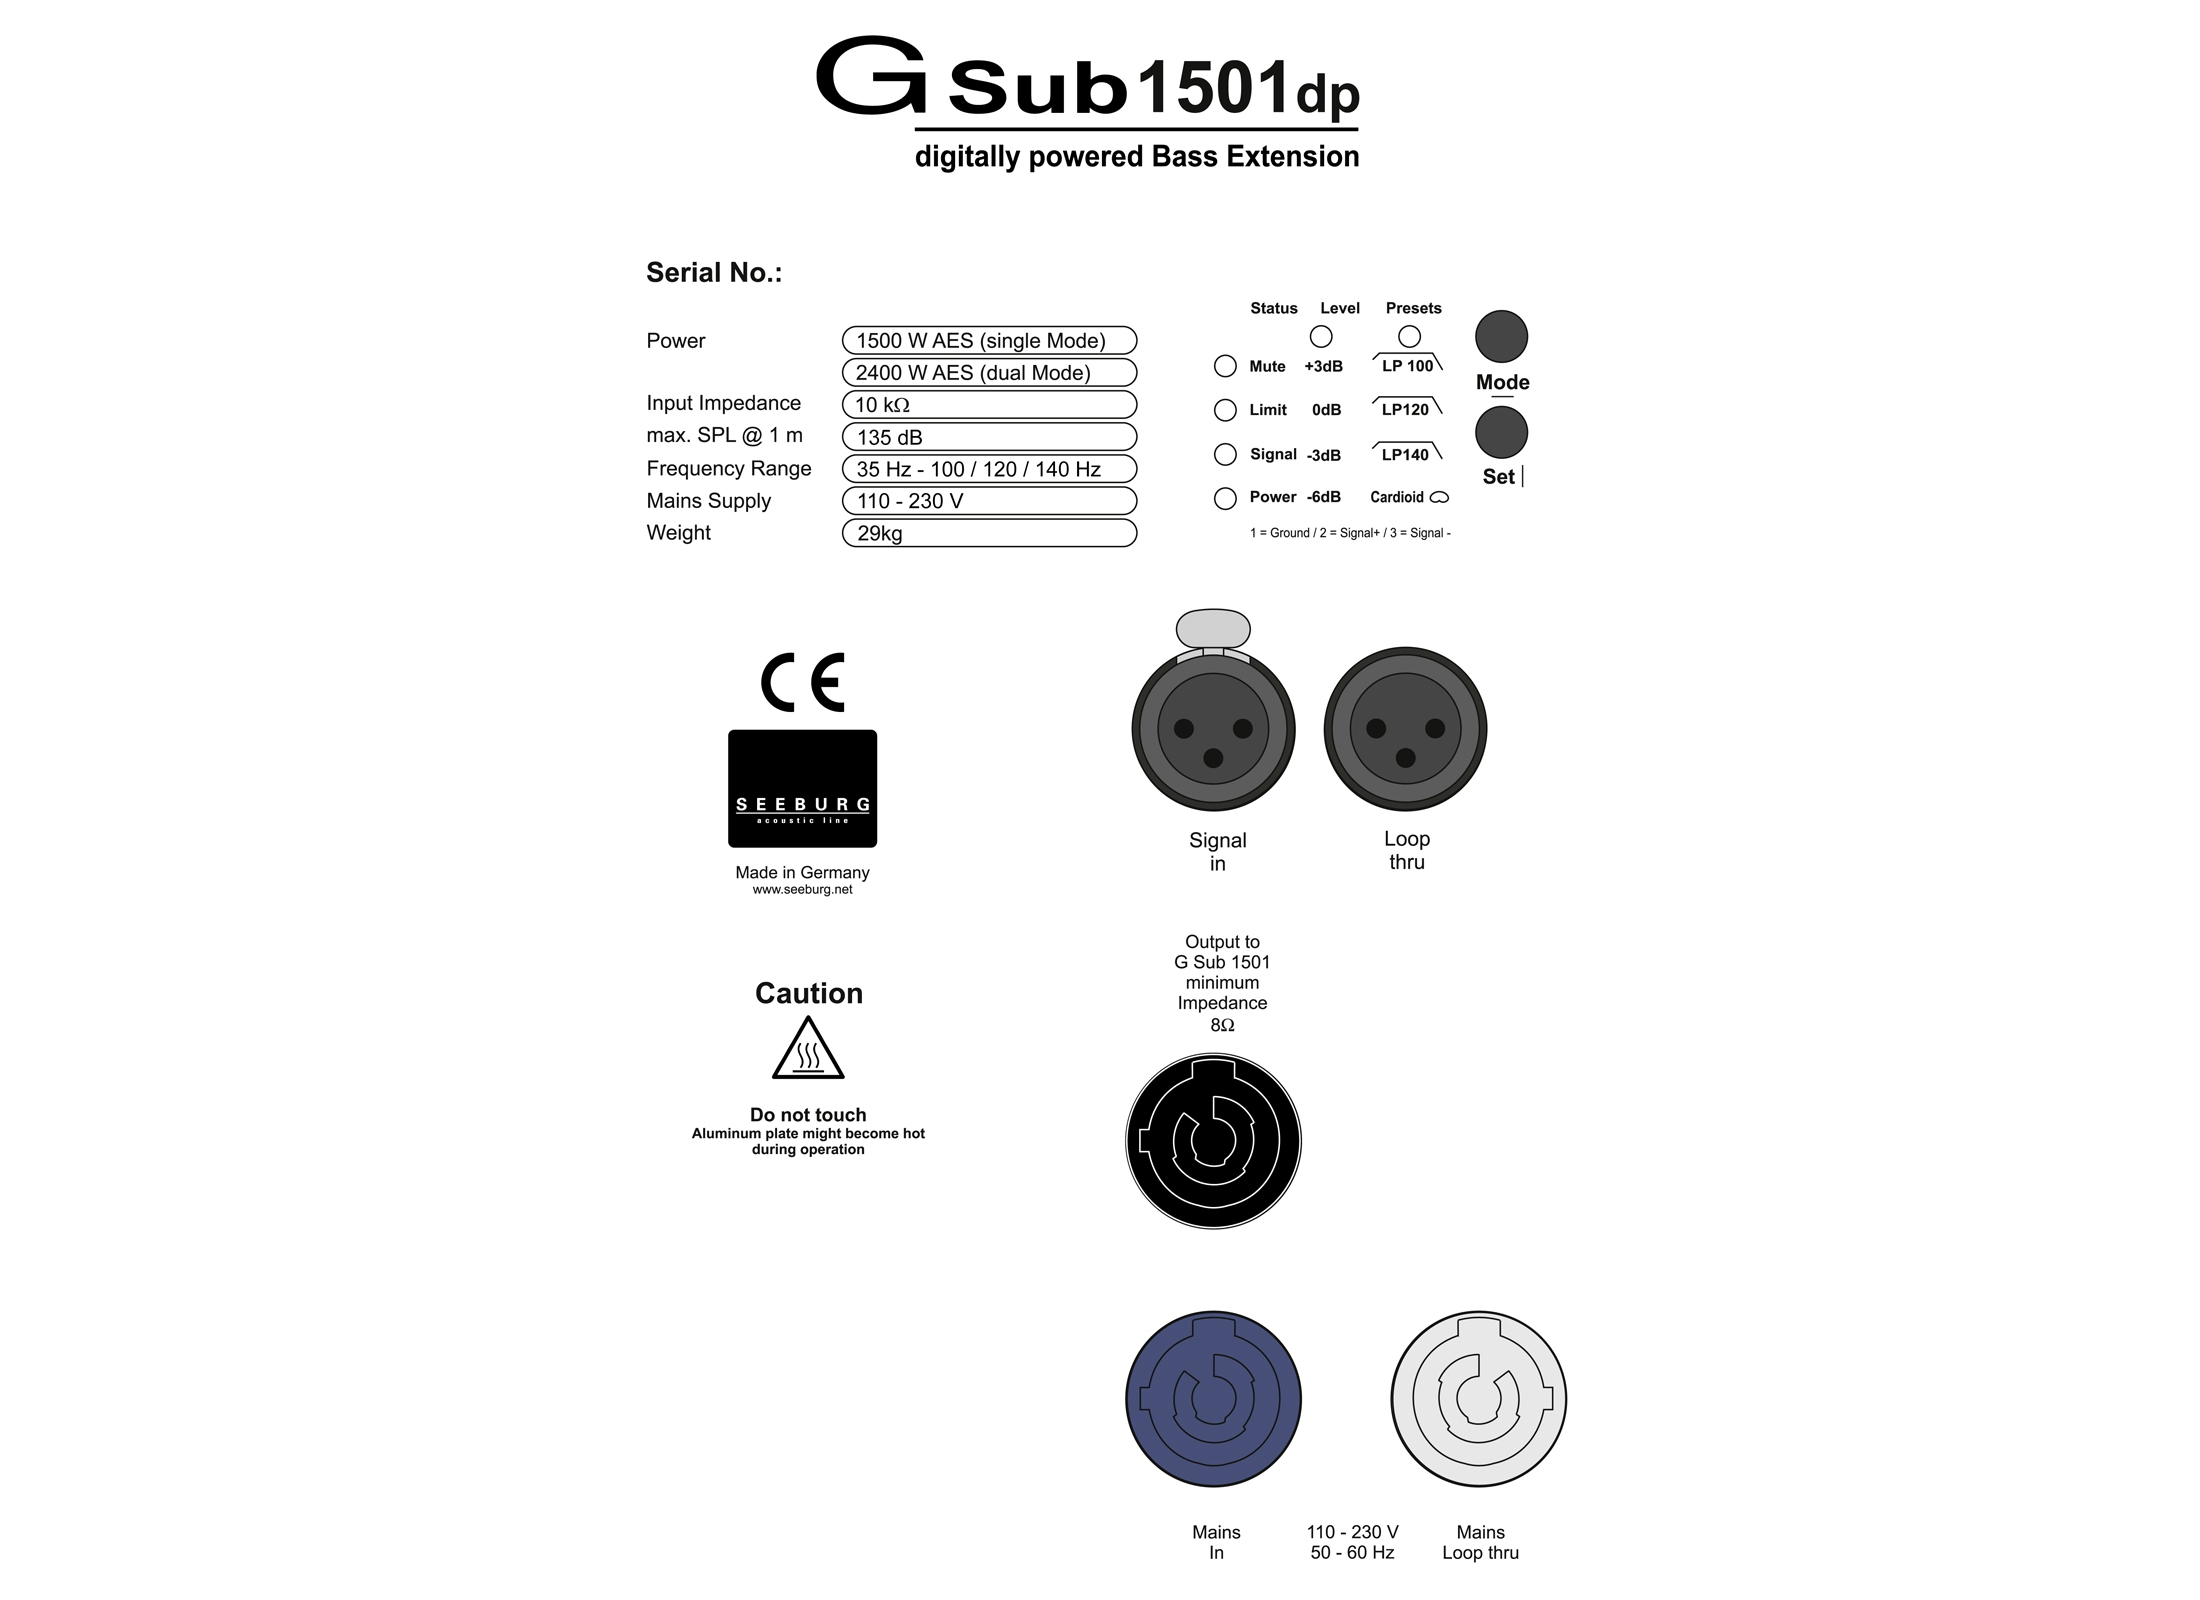 Seeburg Acoustic Line G Sub 1501 Dp Active Subwoofer Online At Low Powercon Wiring Diagram 15 Kw Neodymium M20 In Out Xlr 3pin